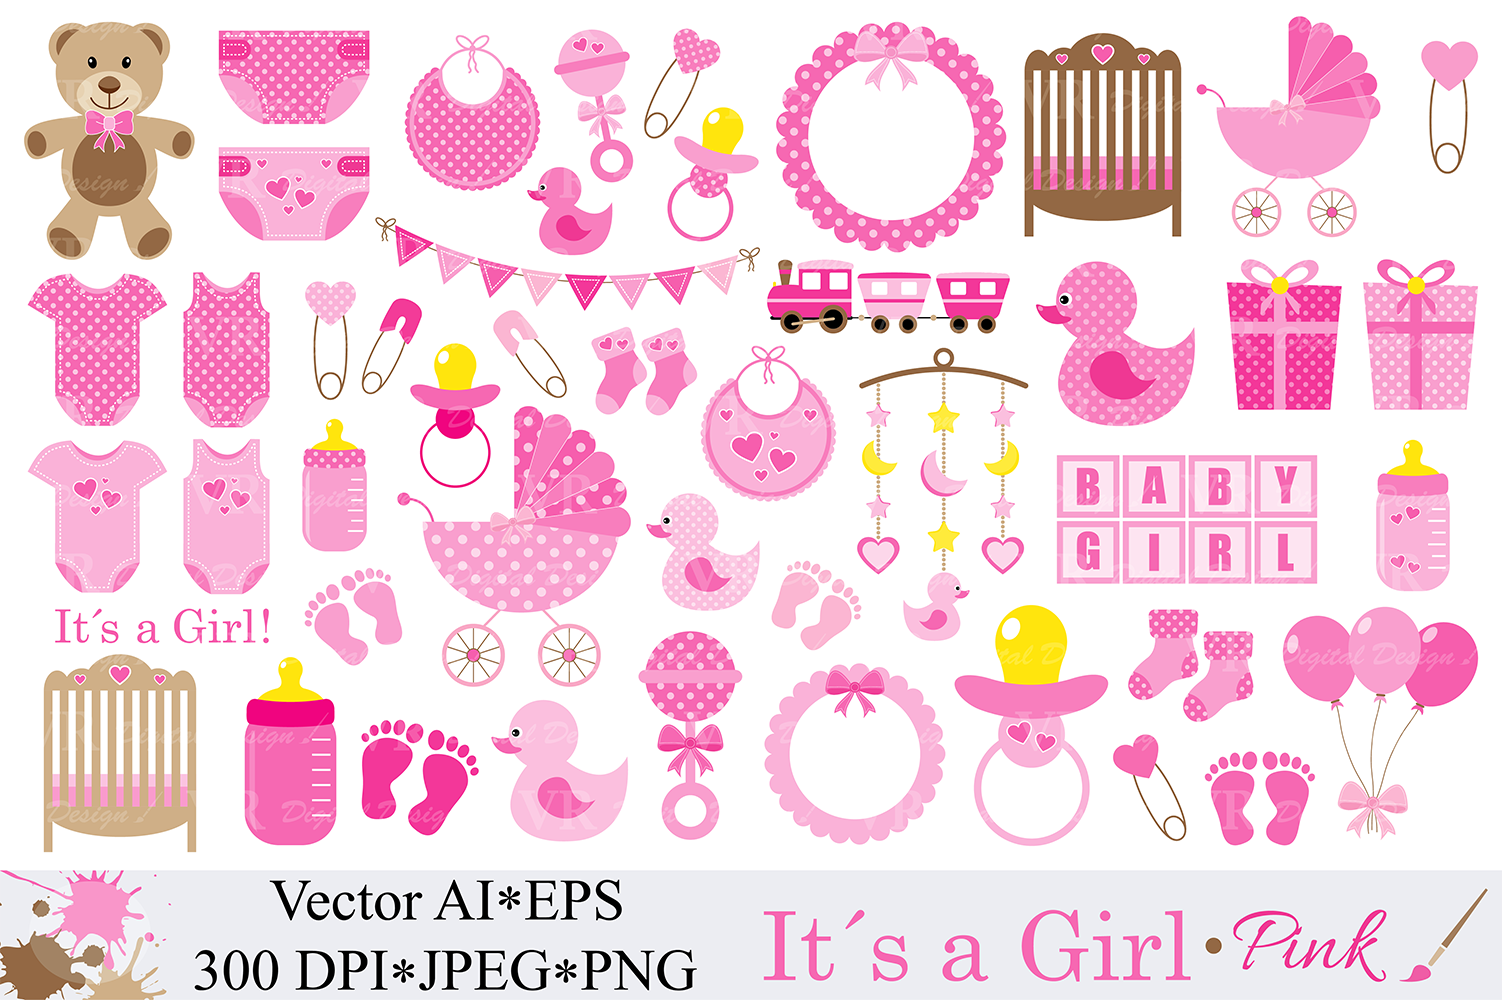 Baby Girl Clipart Pink Baby Shower Clipart Nursery Clip Art It S A Girl Graphics Illustration Vector 46277 Illustrations Design Bundles